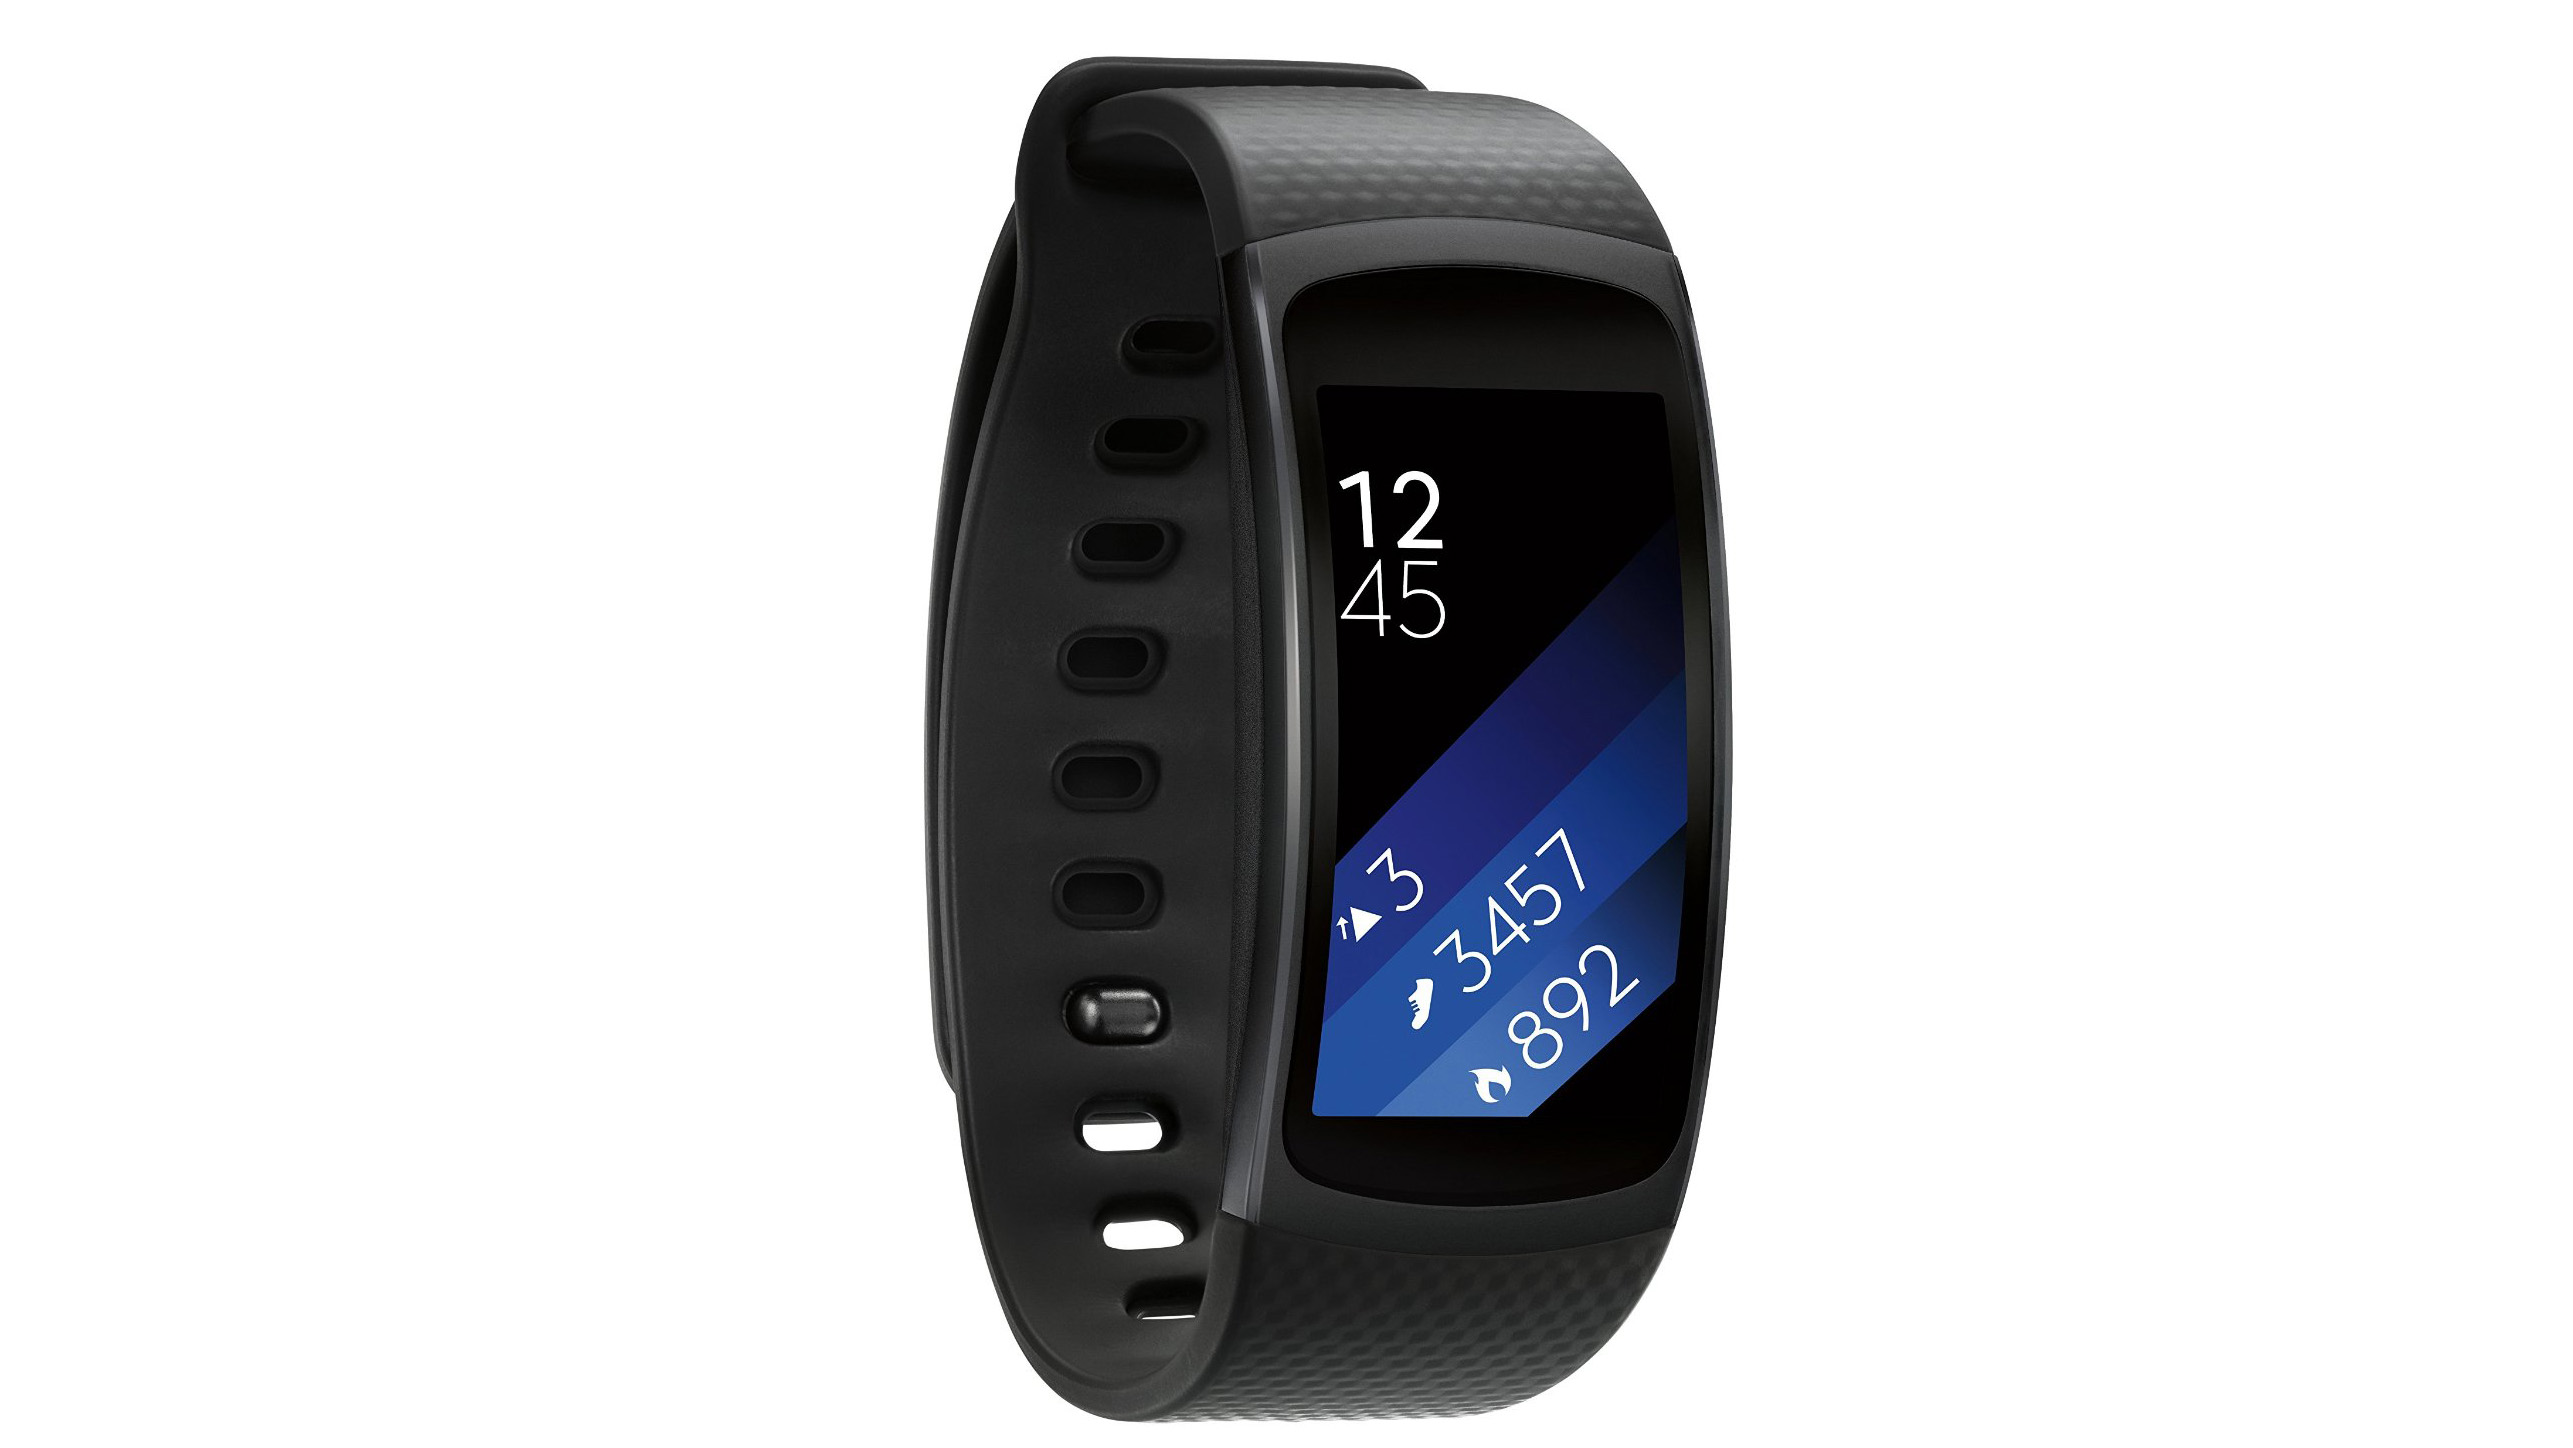 samsung gear fit 2 receives a 30 price cut gsmarena blog. Black Bedroom Furniture Sets. Home Design Ideas